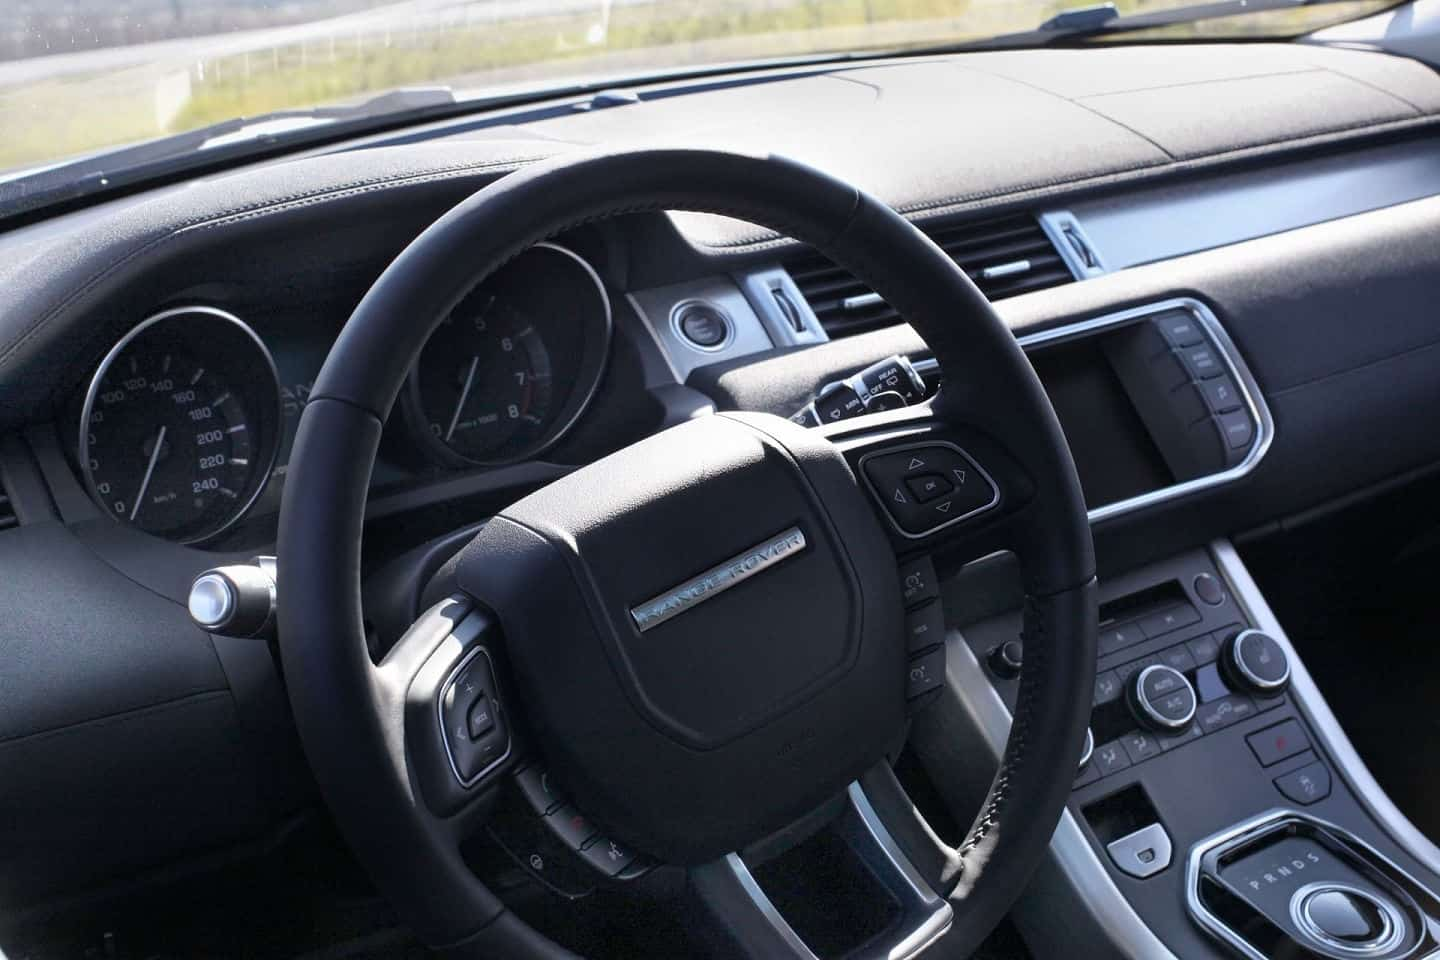 2013 Range Rover Evoque steering wheel